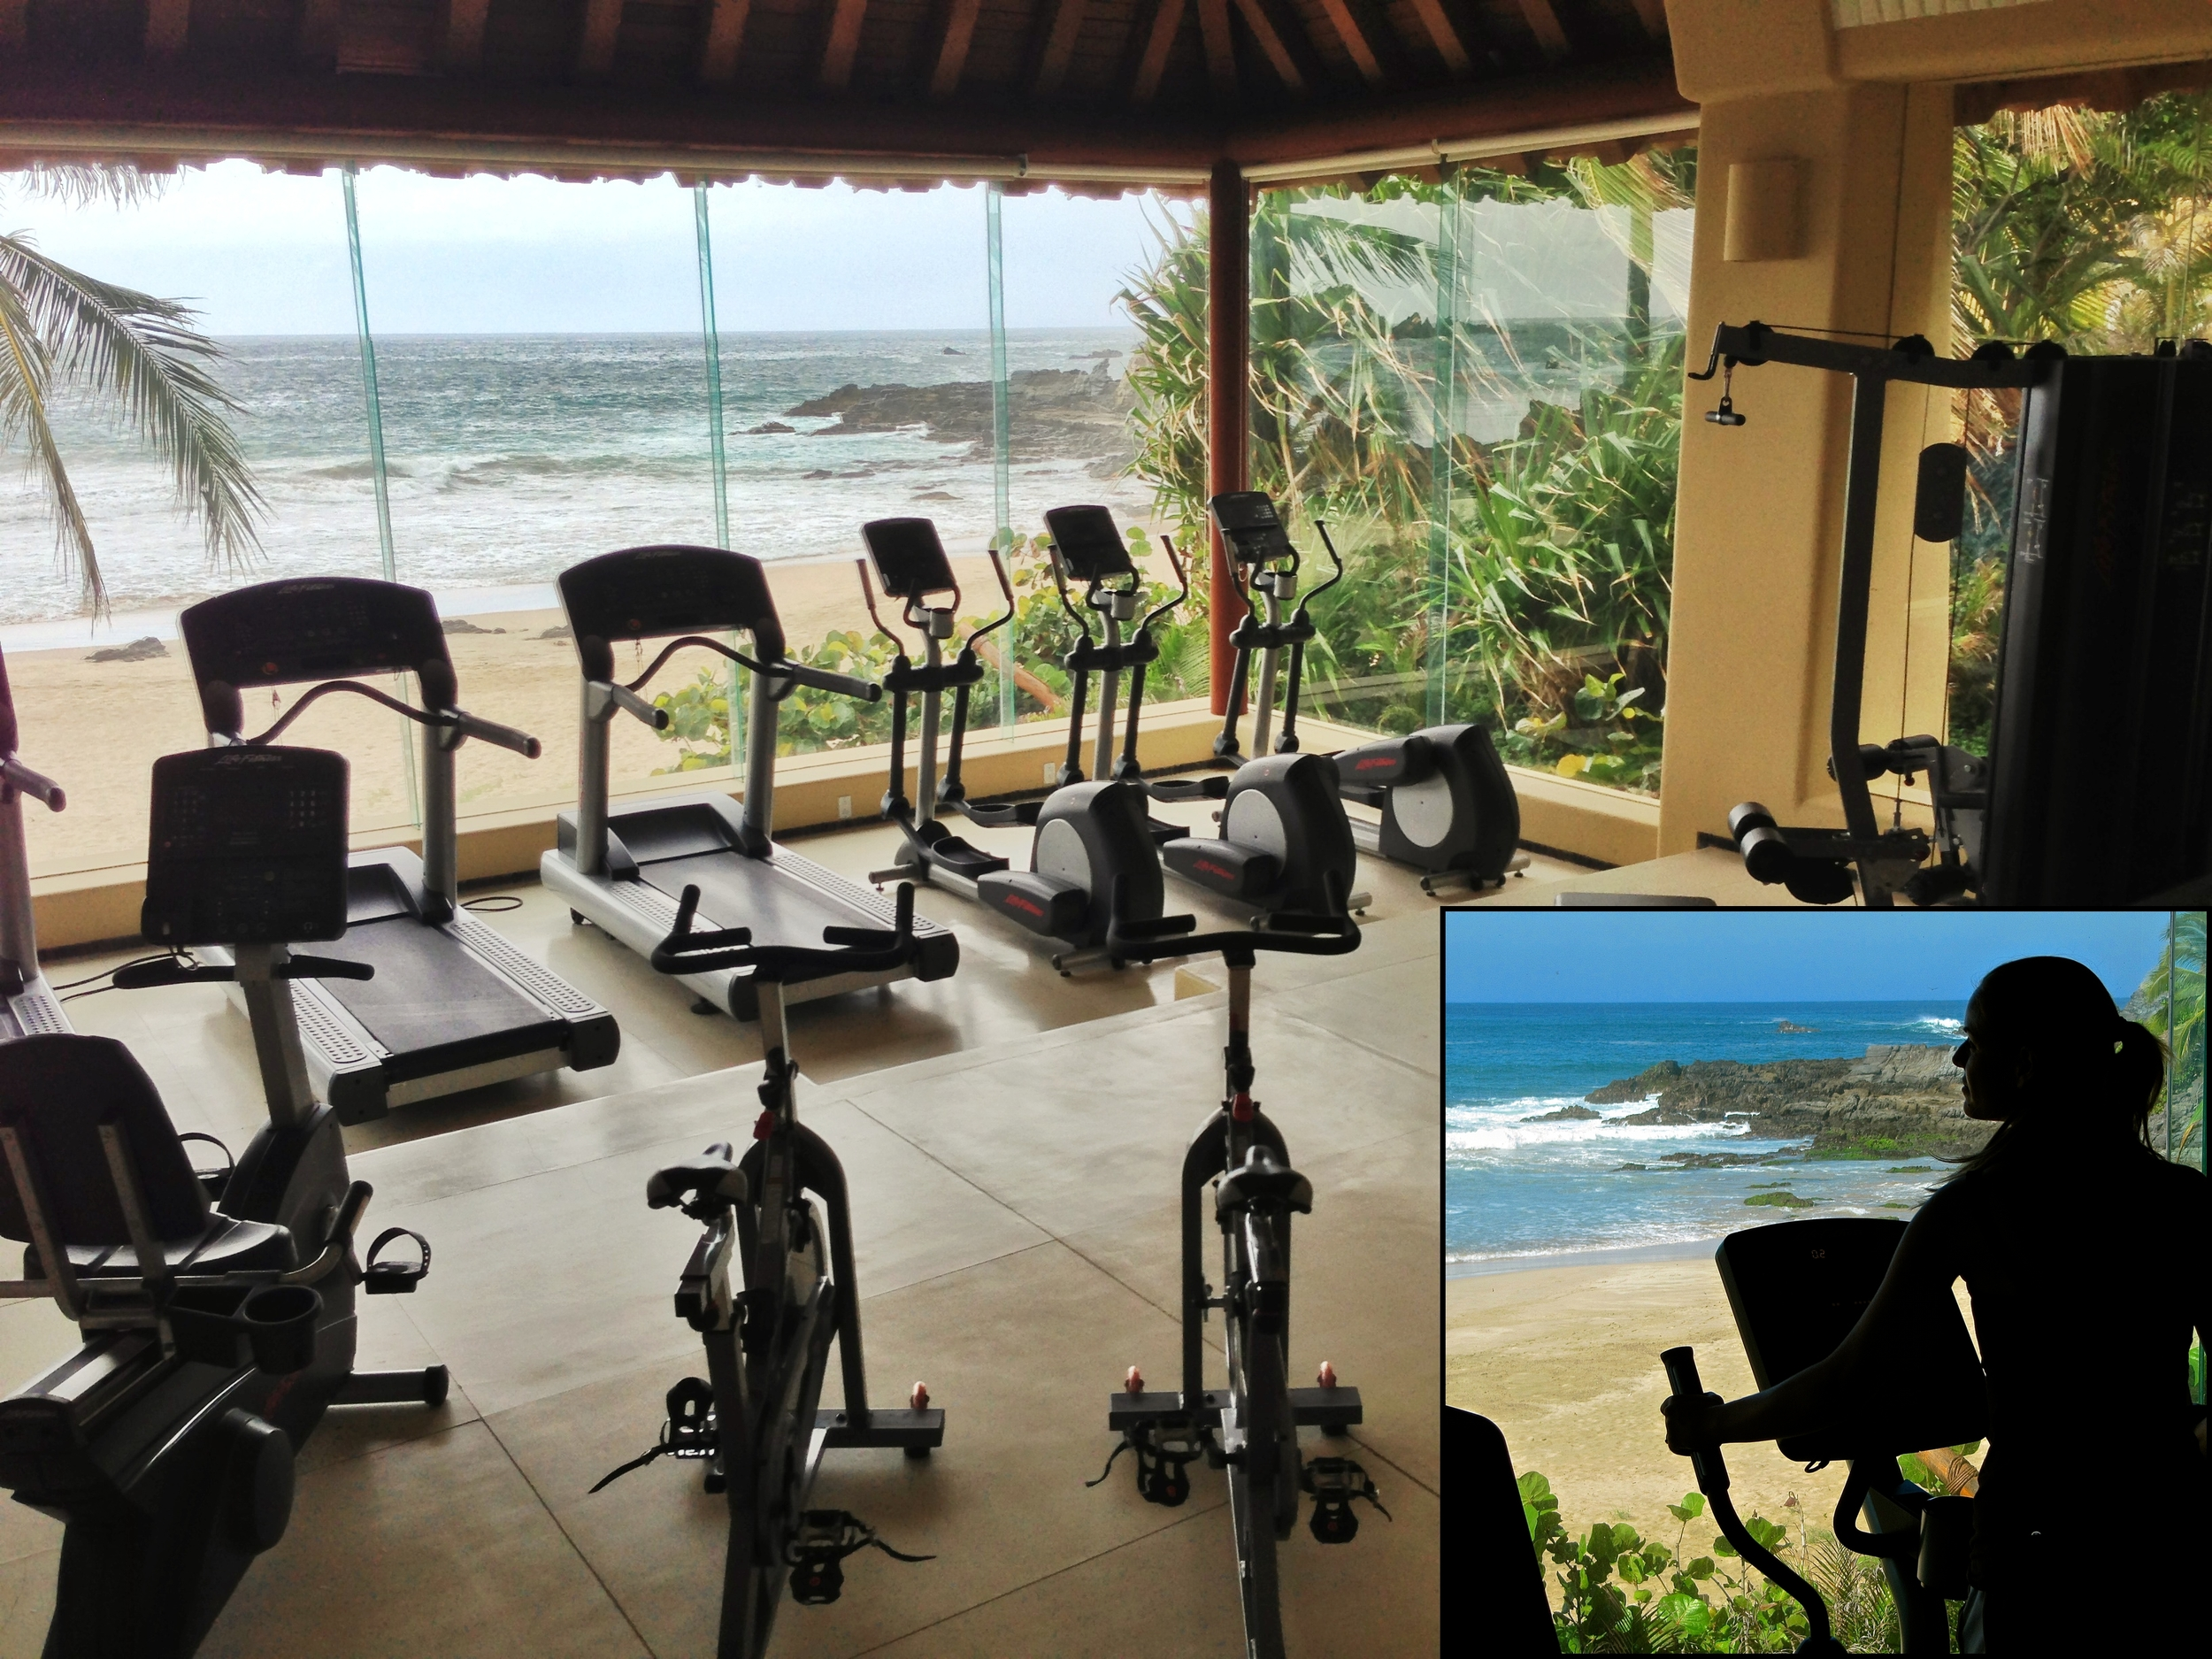 And if exercise indoors is your thing, then you'll love the air-conditioned gym right on the beach.